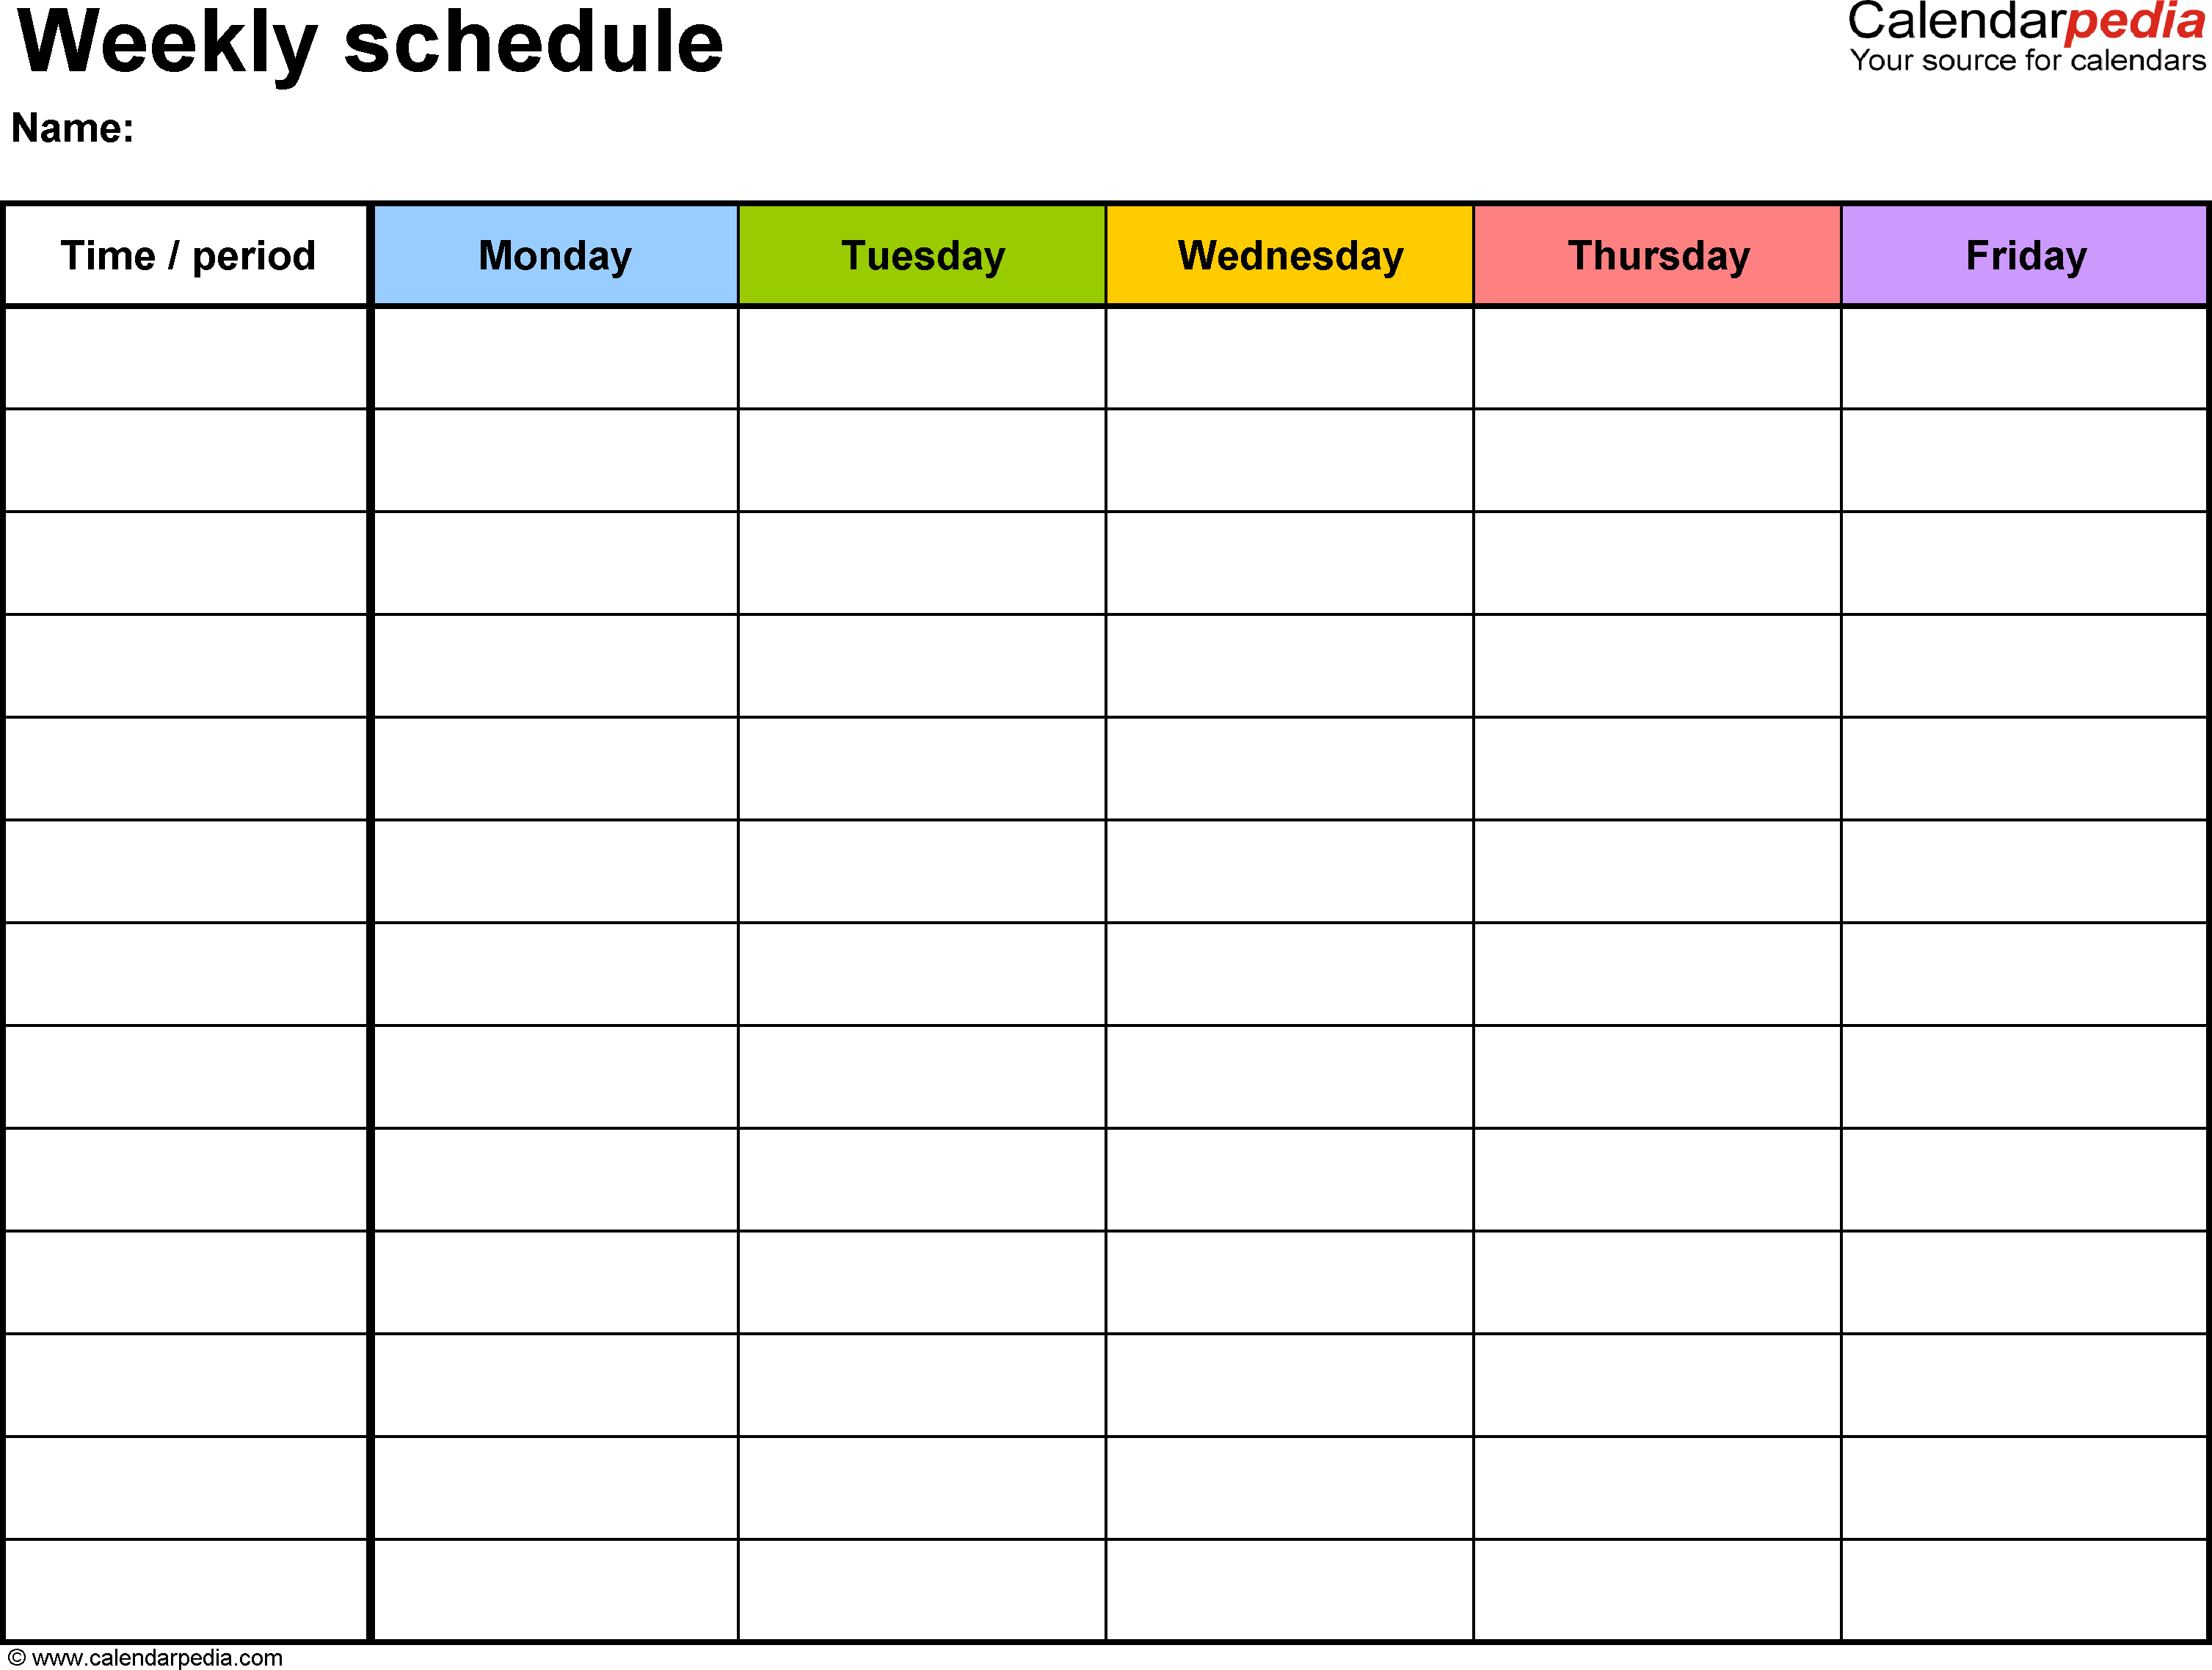 Printable Weekly Schedule With Times - Infer.ifreezer.co regarding Template For Weekly Football Games Week 1